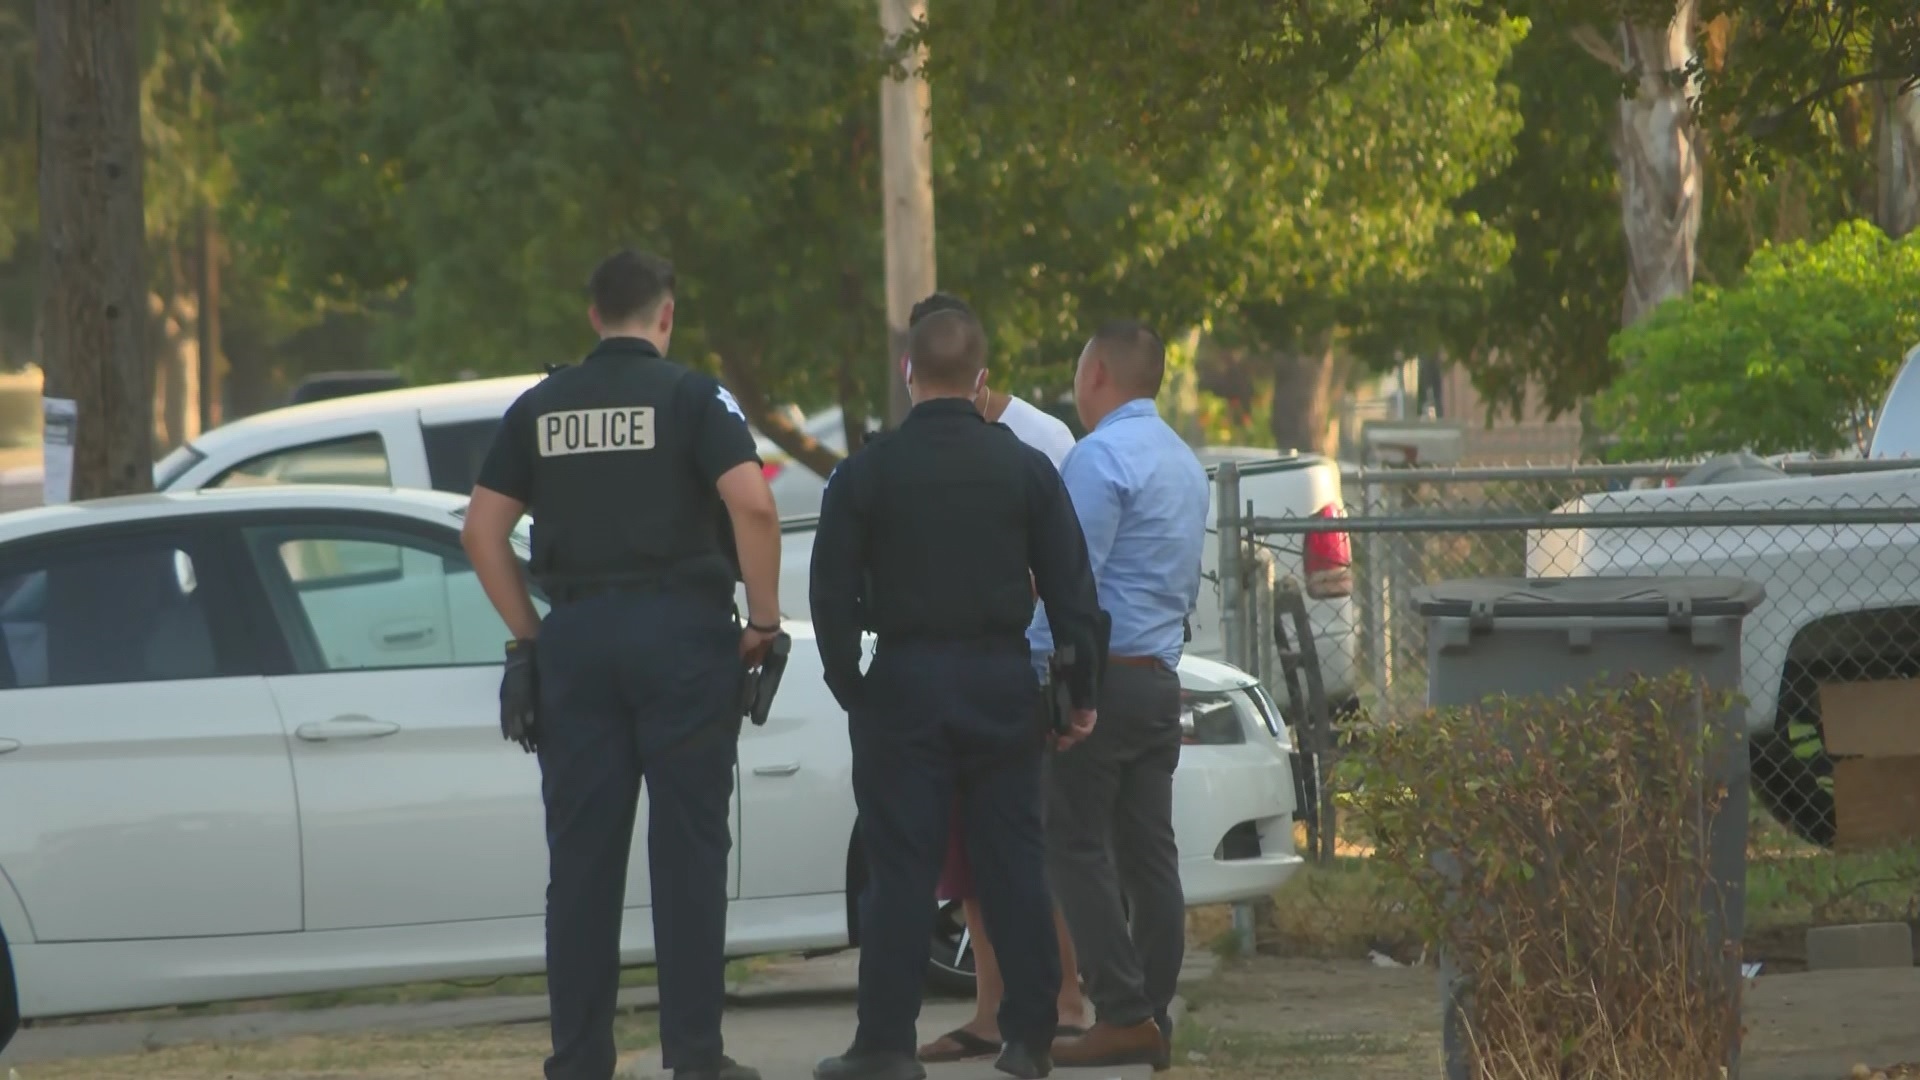 Eight shots fired in southwest Fresno injure 40-year-old, police say